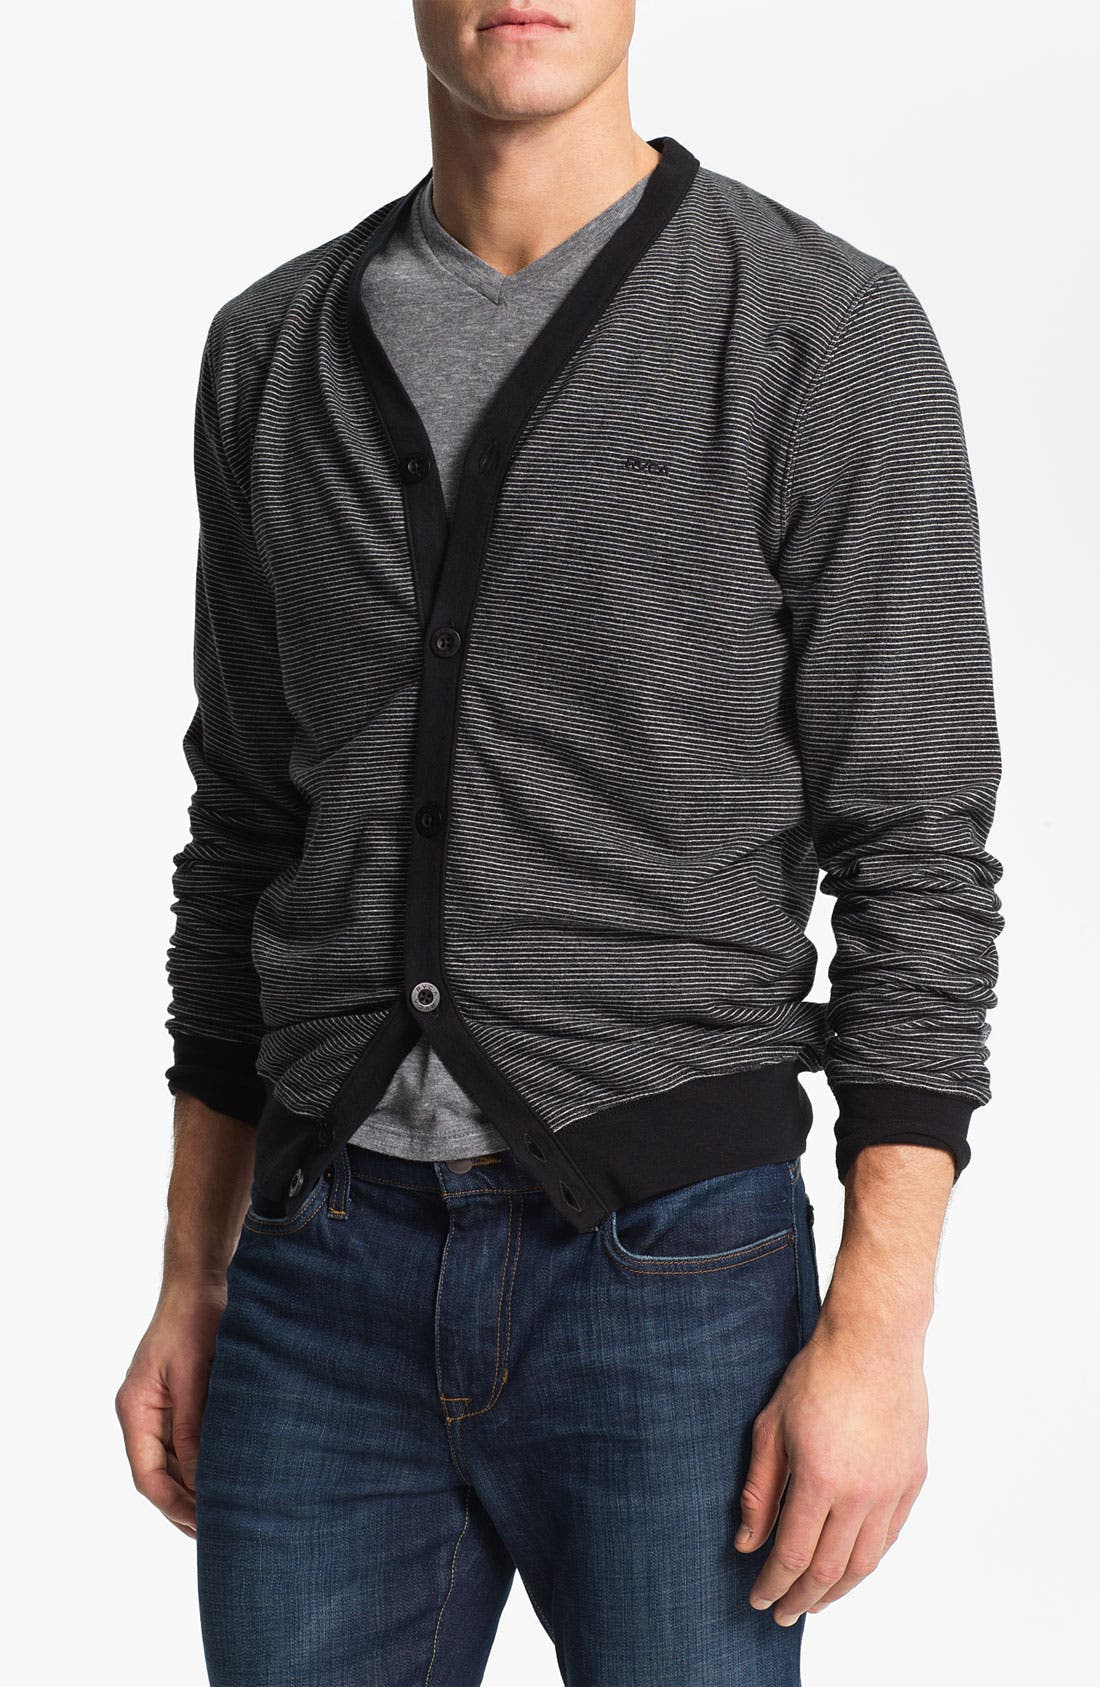 Main Image - RVCA 'Skaville' French Terry Cardigan